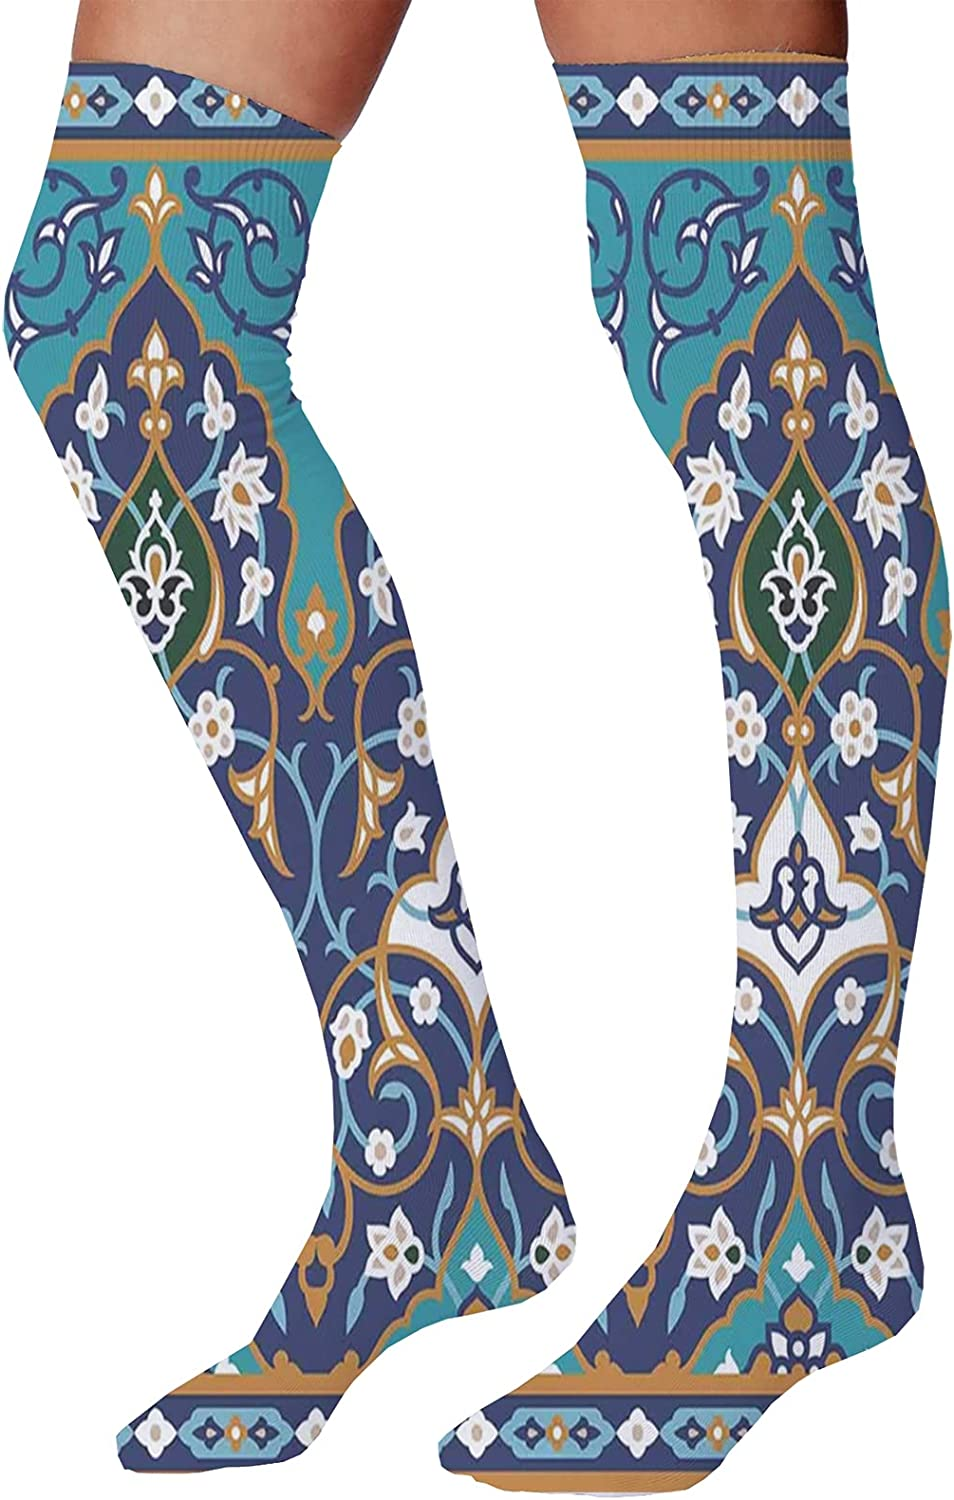 Men's and Women's Fun Socks,Ottoman Folkloric Art Inspired Abstract Aged Middle Age Renaissance Artful Print